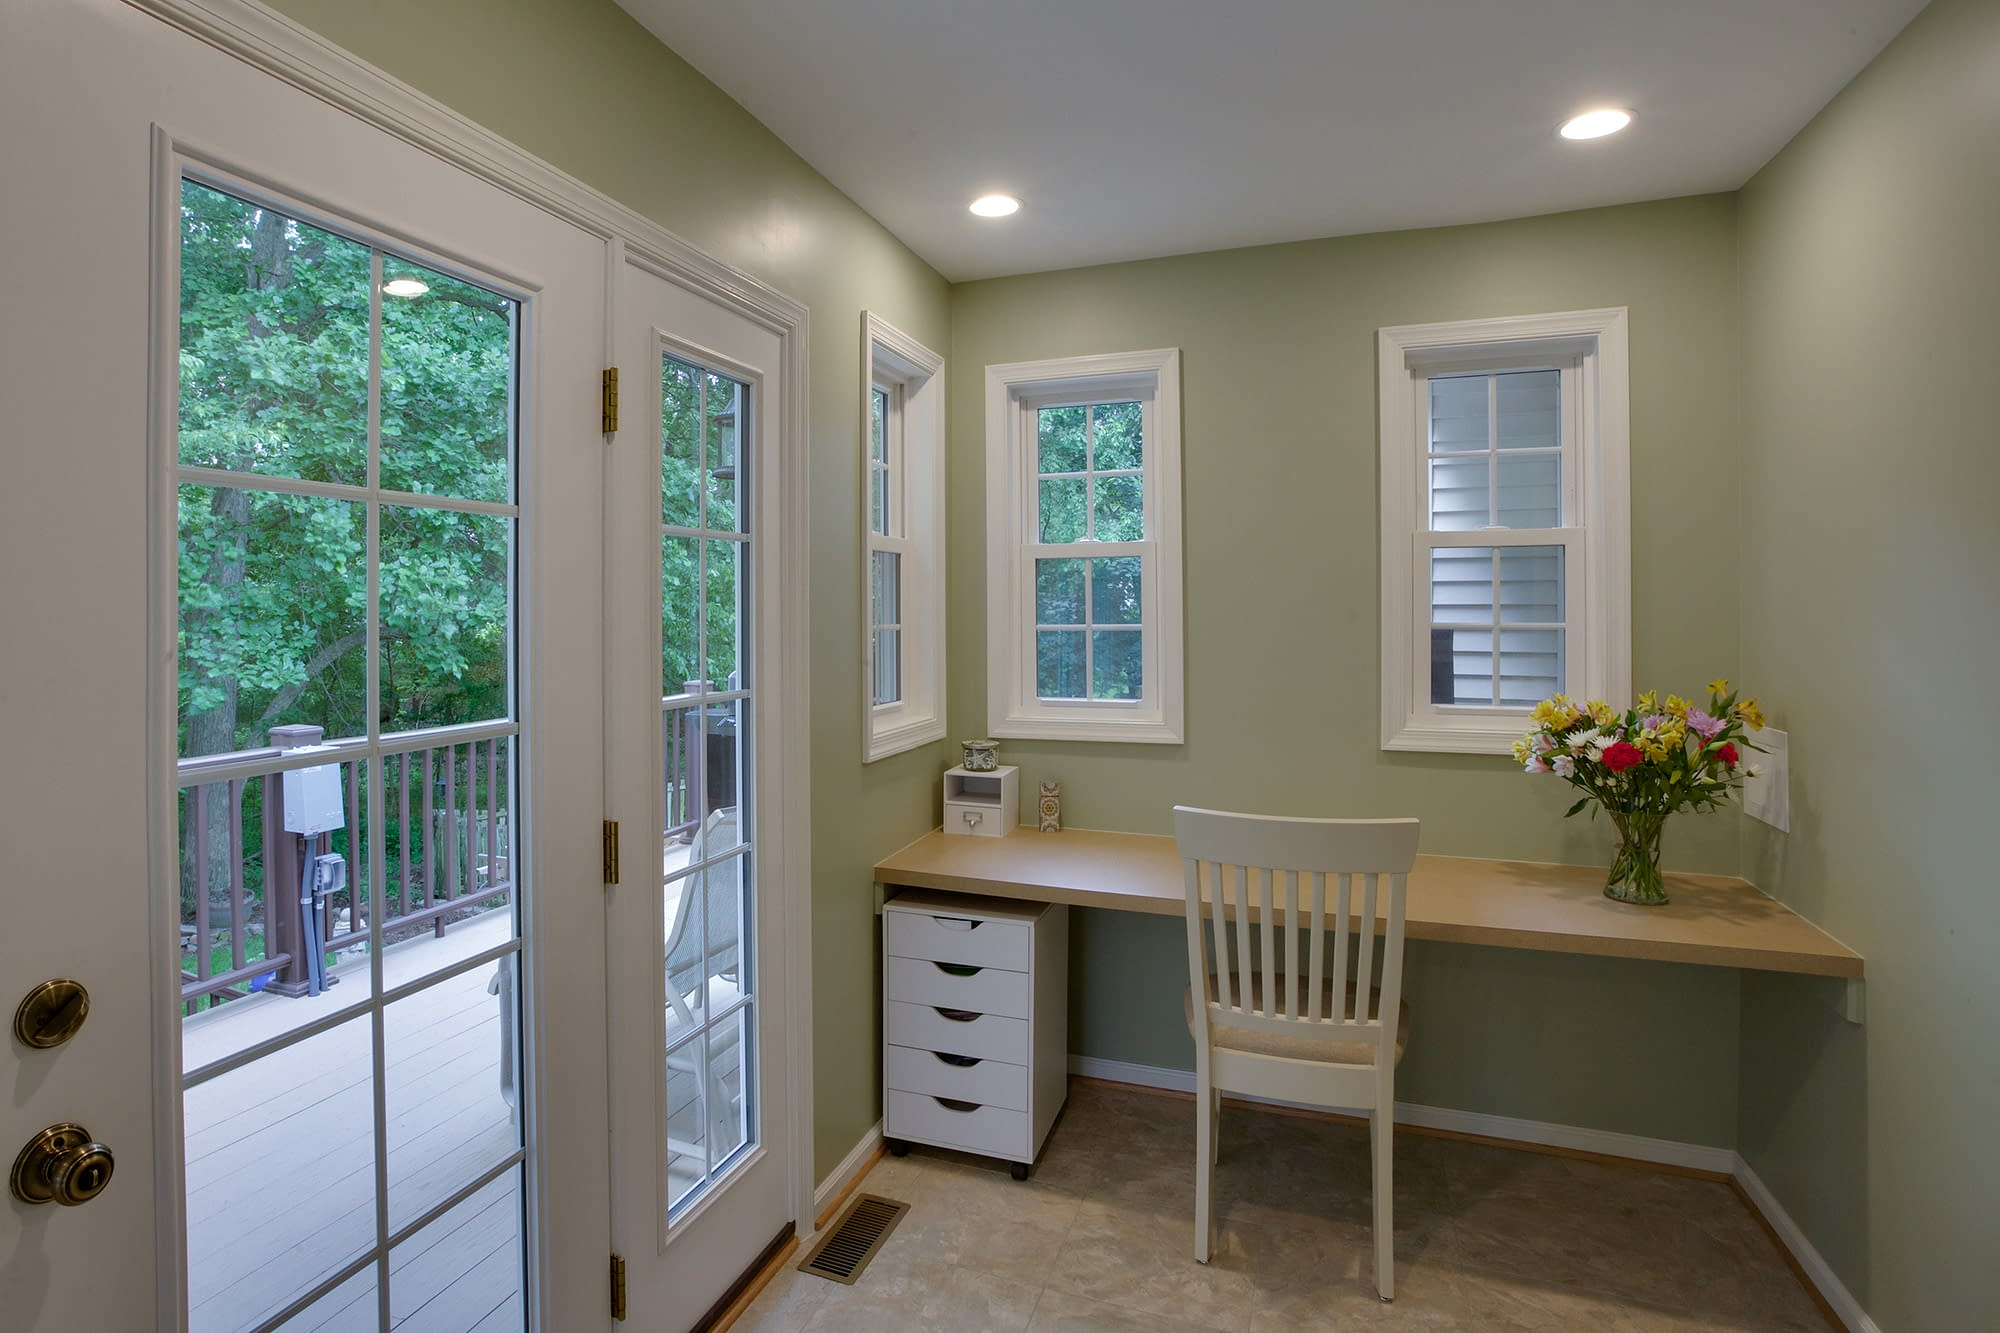 Home Remodeling project, home remodel, home addition, tile flooring, large windows, green walls, large ceilings, Northern Virginia remodeling, sitting table,